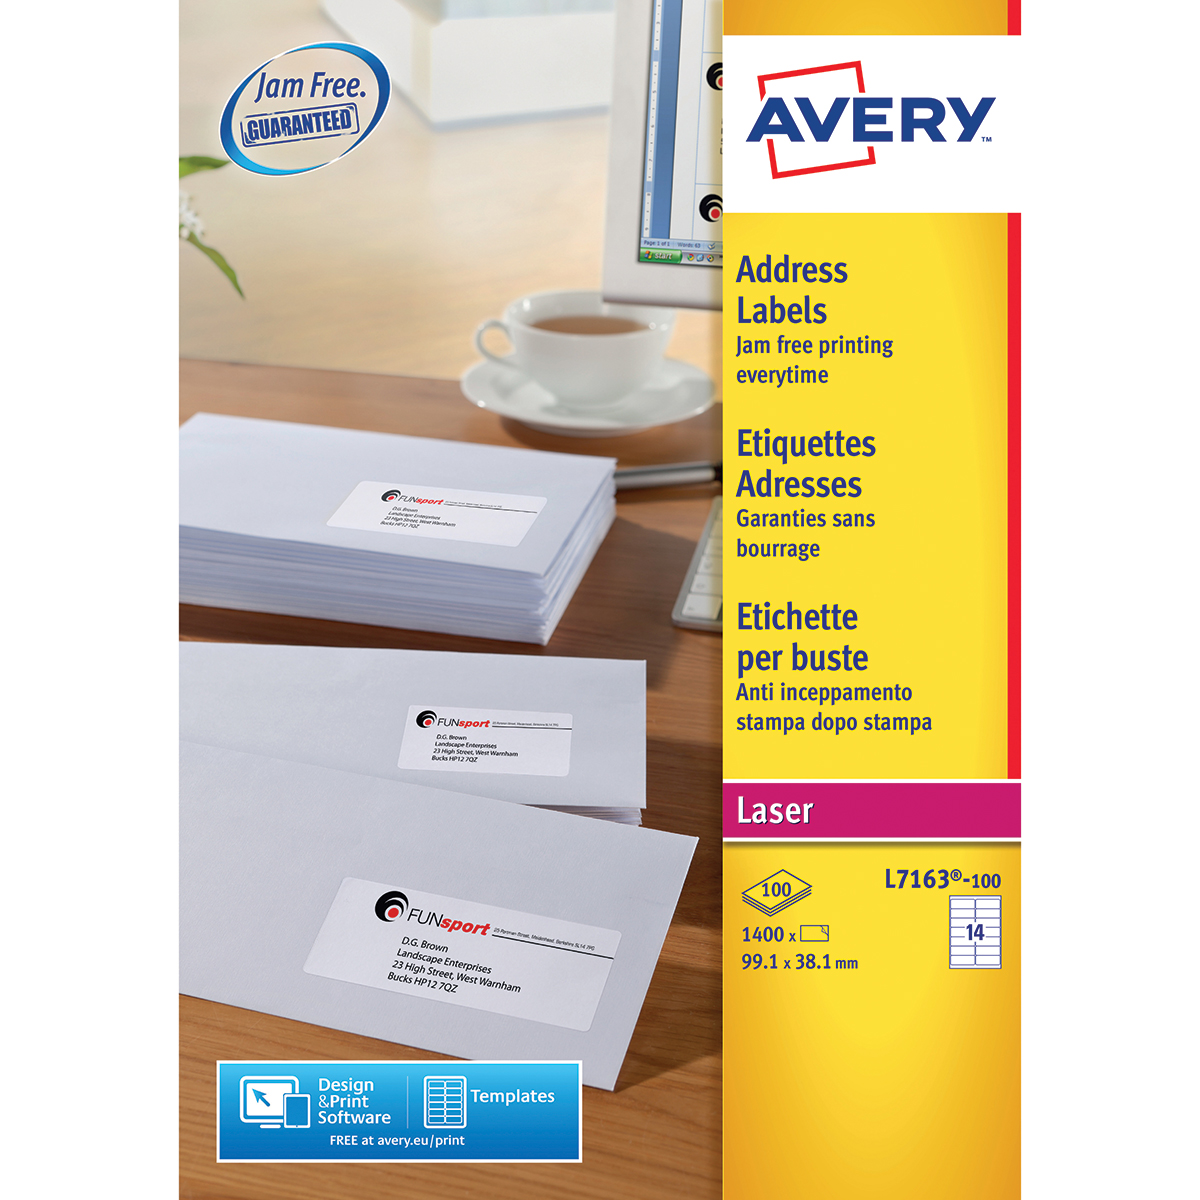 Avery L7163-100 Address Labels 100 sheets - 14 Labels per Sheet